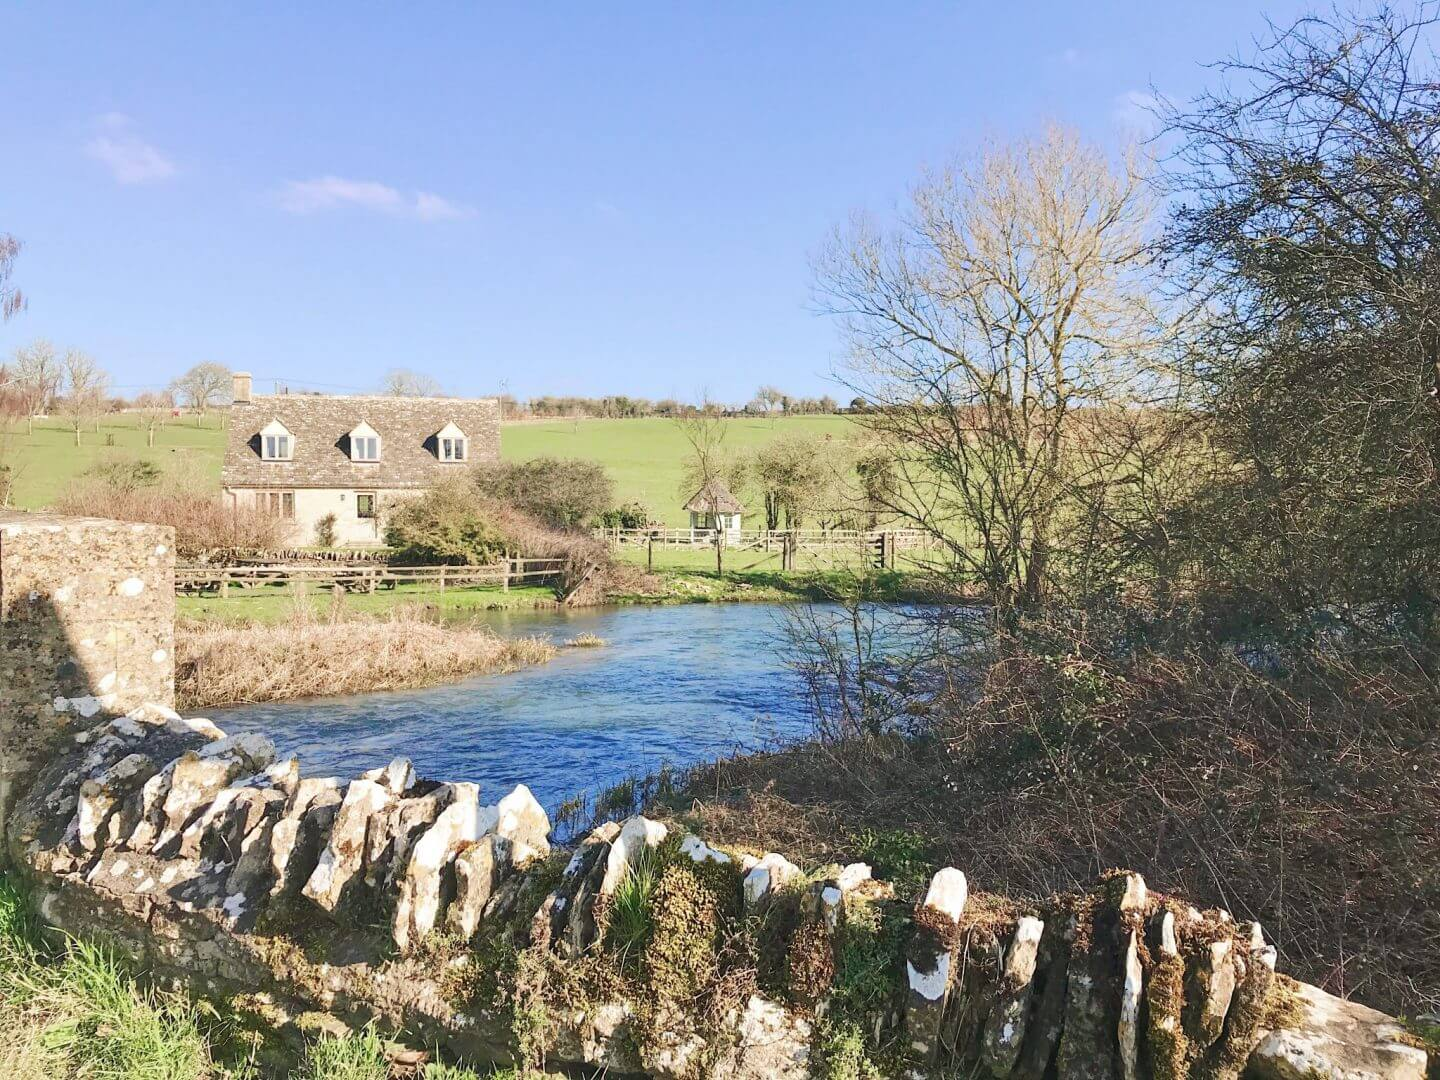 Stone walls and a stone house in a field, with a stream running by